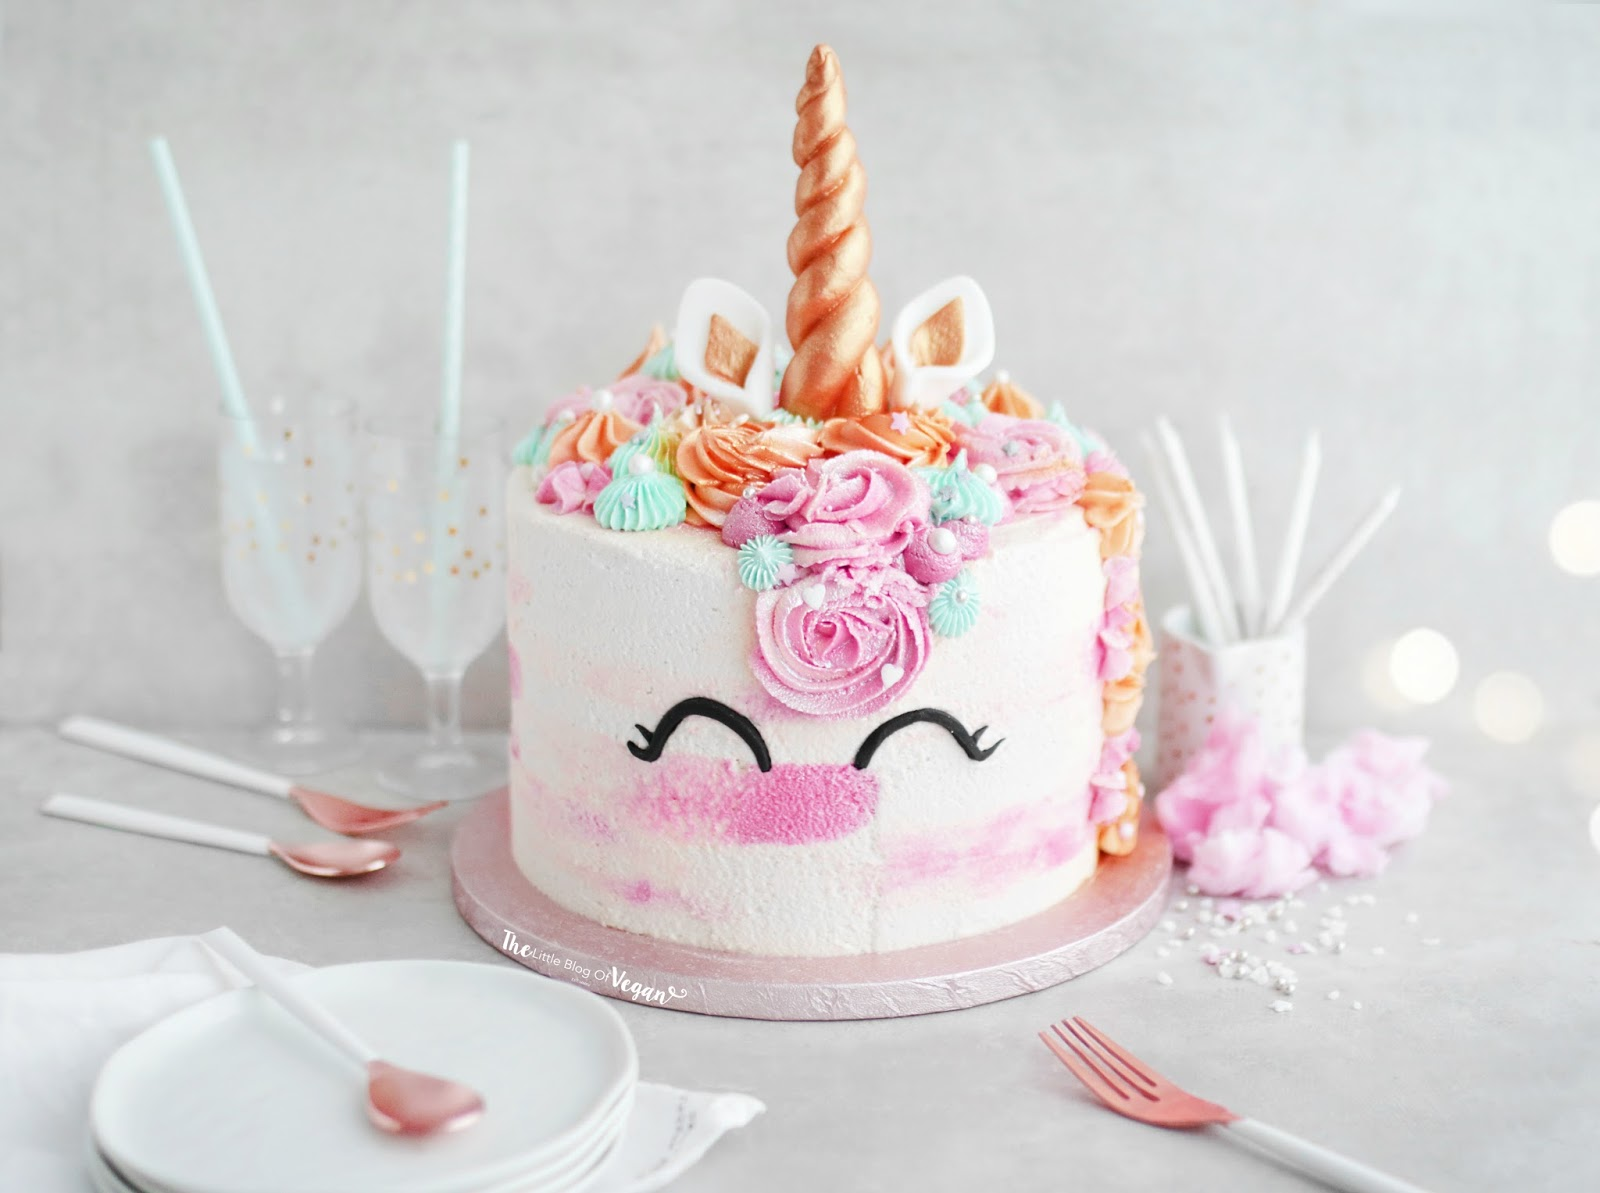 Vegan Unicorn Cake Recipe The Little Blog Of Vegan